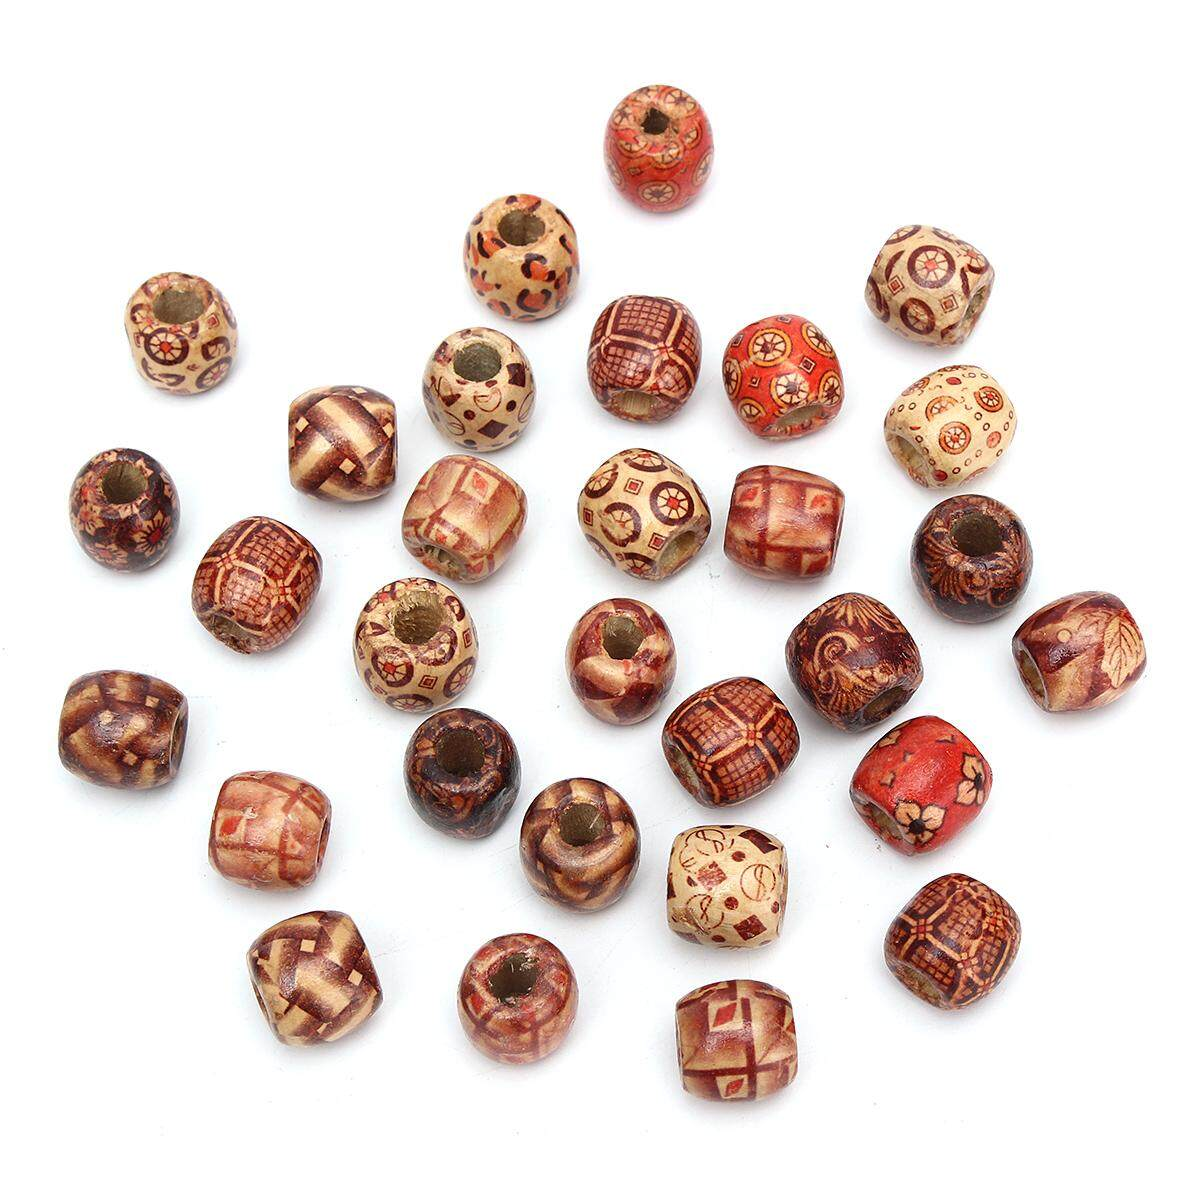 New 30pcs 16mm Wooden Exotic Dreadlock Beads Assorted/mixed Patterned Wood By Moonbeam.